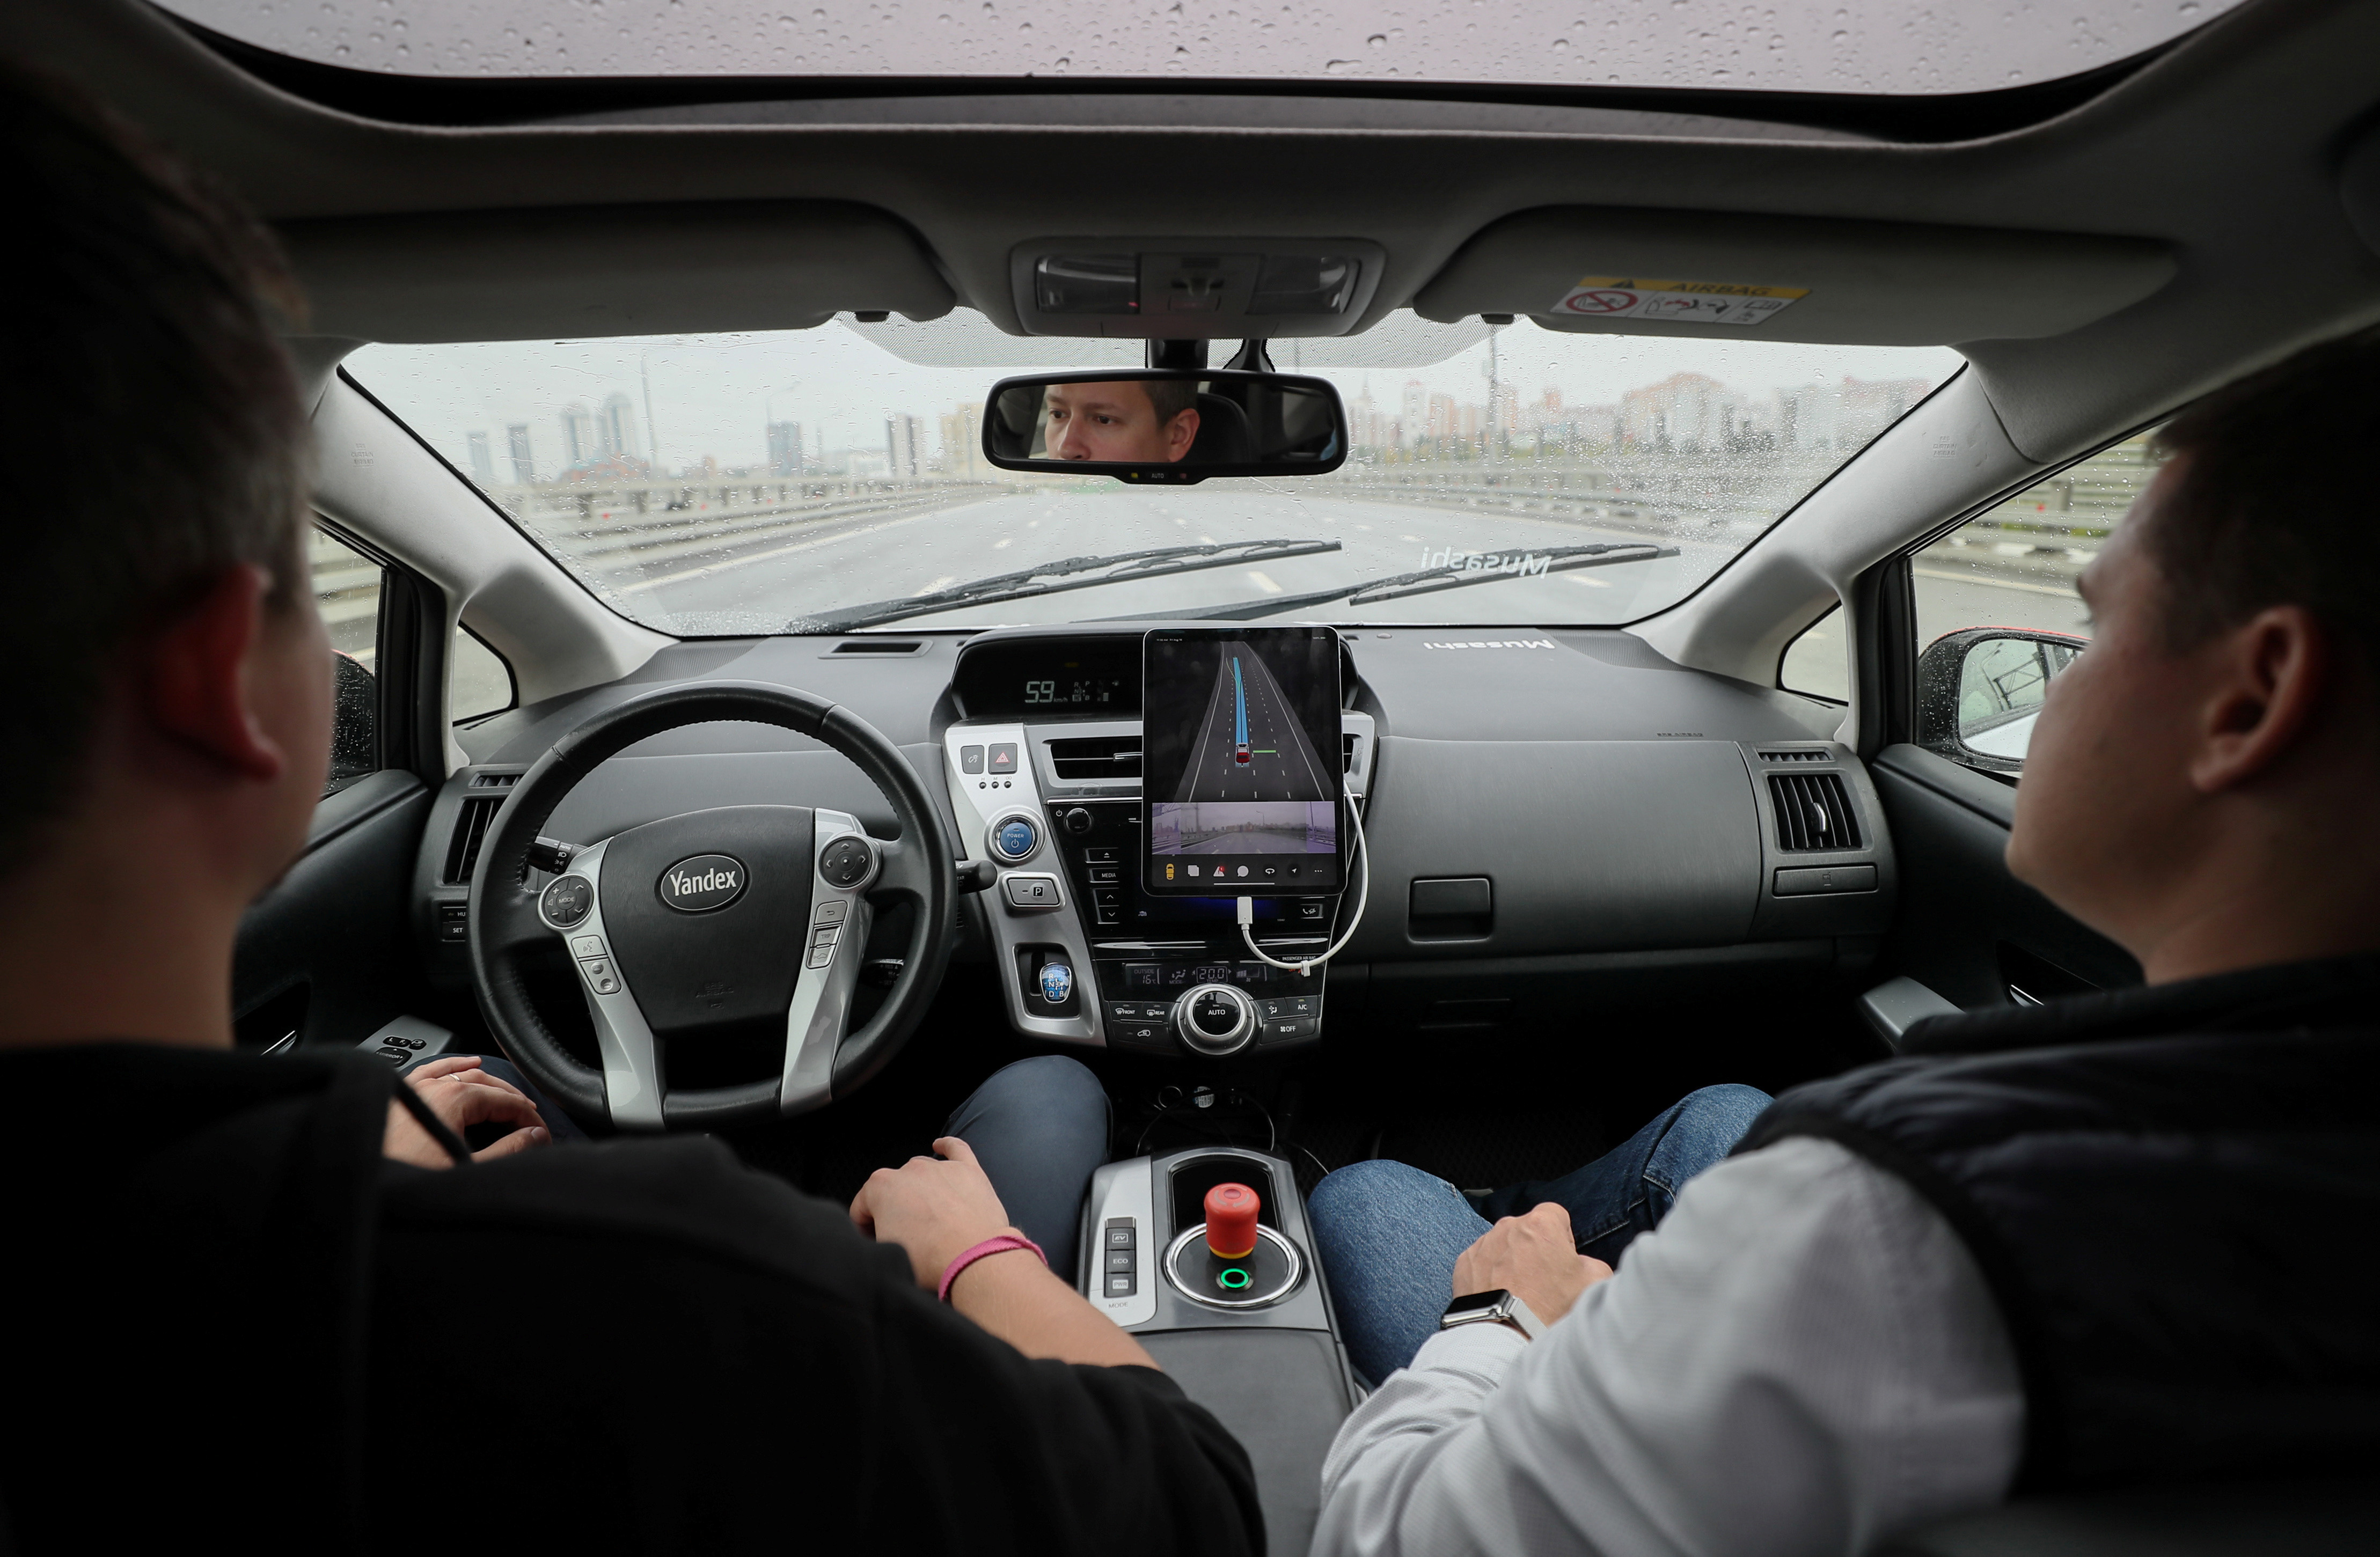 An interior view shows a self-driving car owned and tested by Yandex company during a presentation in Moscow, Russia August 16, 2019. Picture taken August 16, 2019. REUTERS/Evgenia Novozhenina - RC1ED9022F40